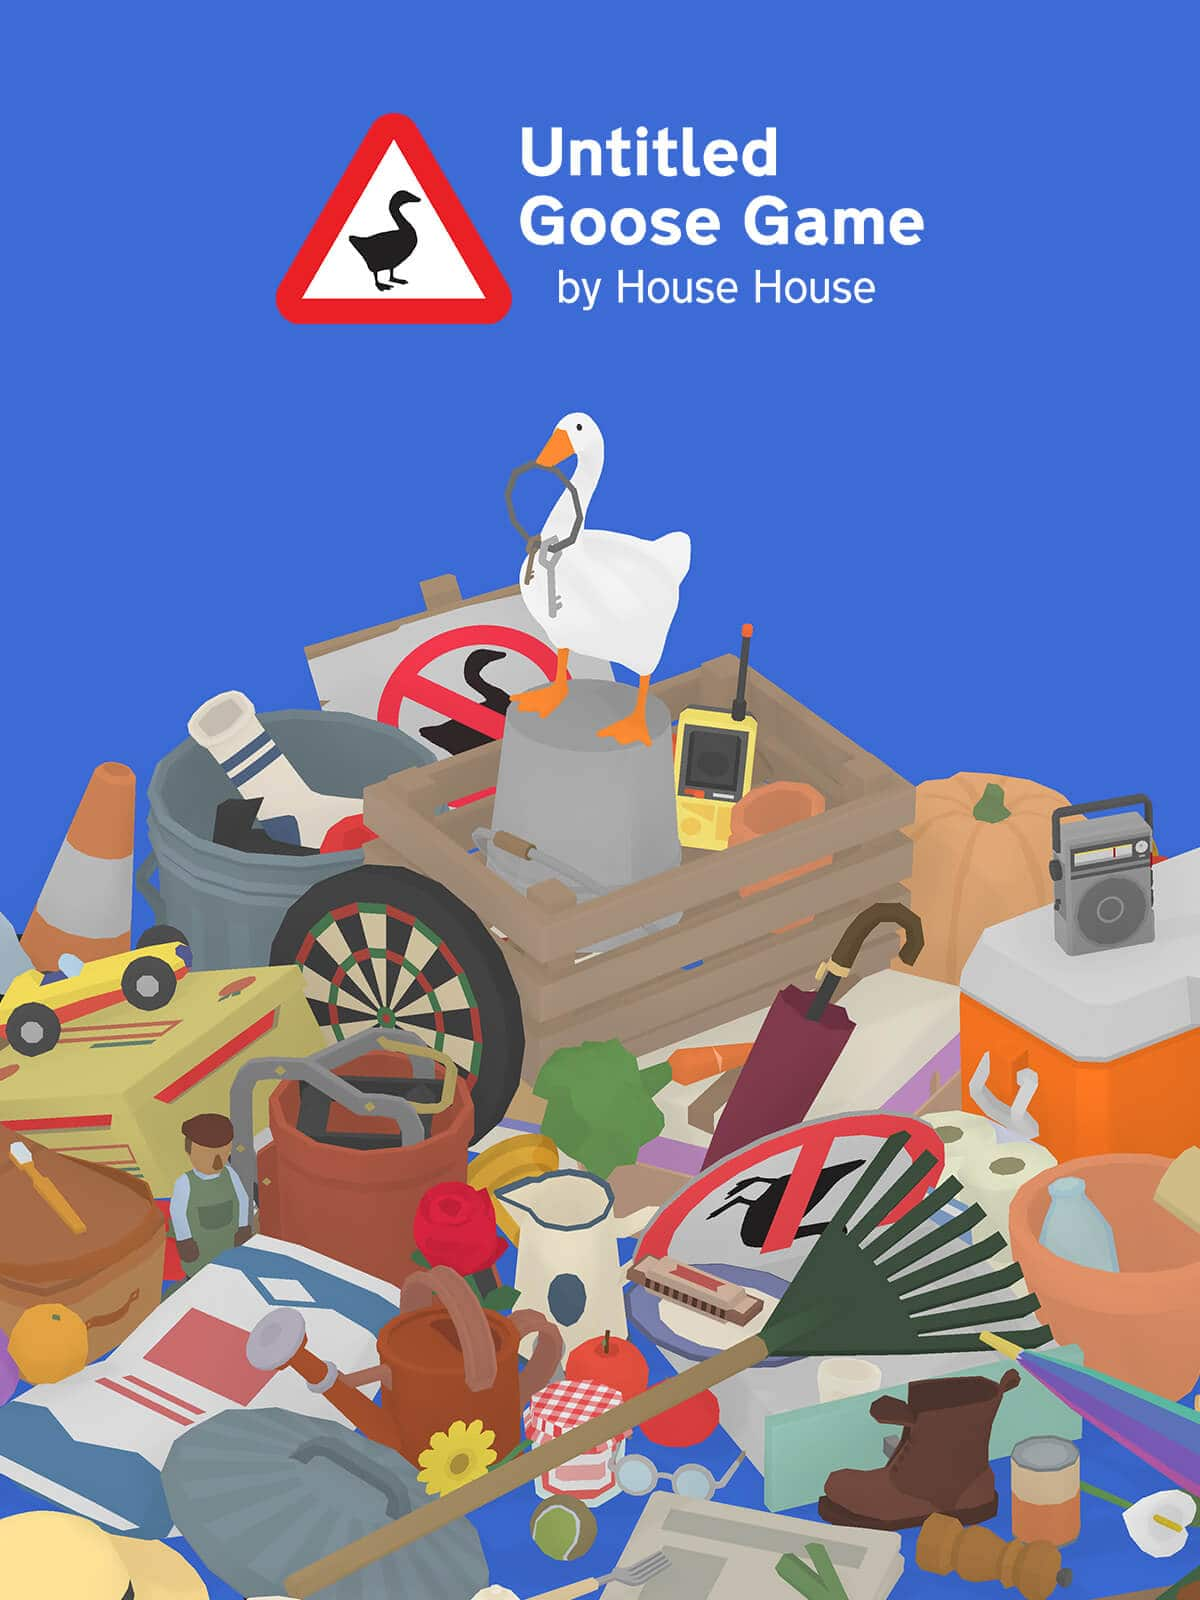 (YMMV) Untitled Goose Game $4.99 on Epic (PC) if you still have a $10 coupon